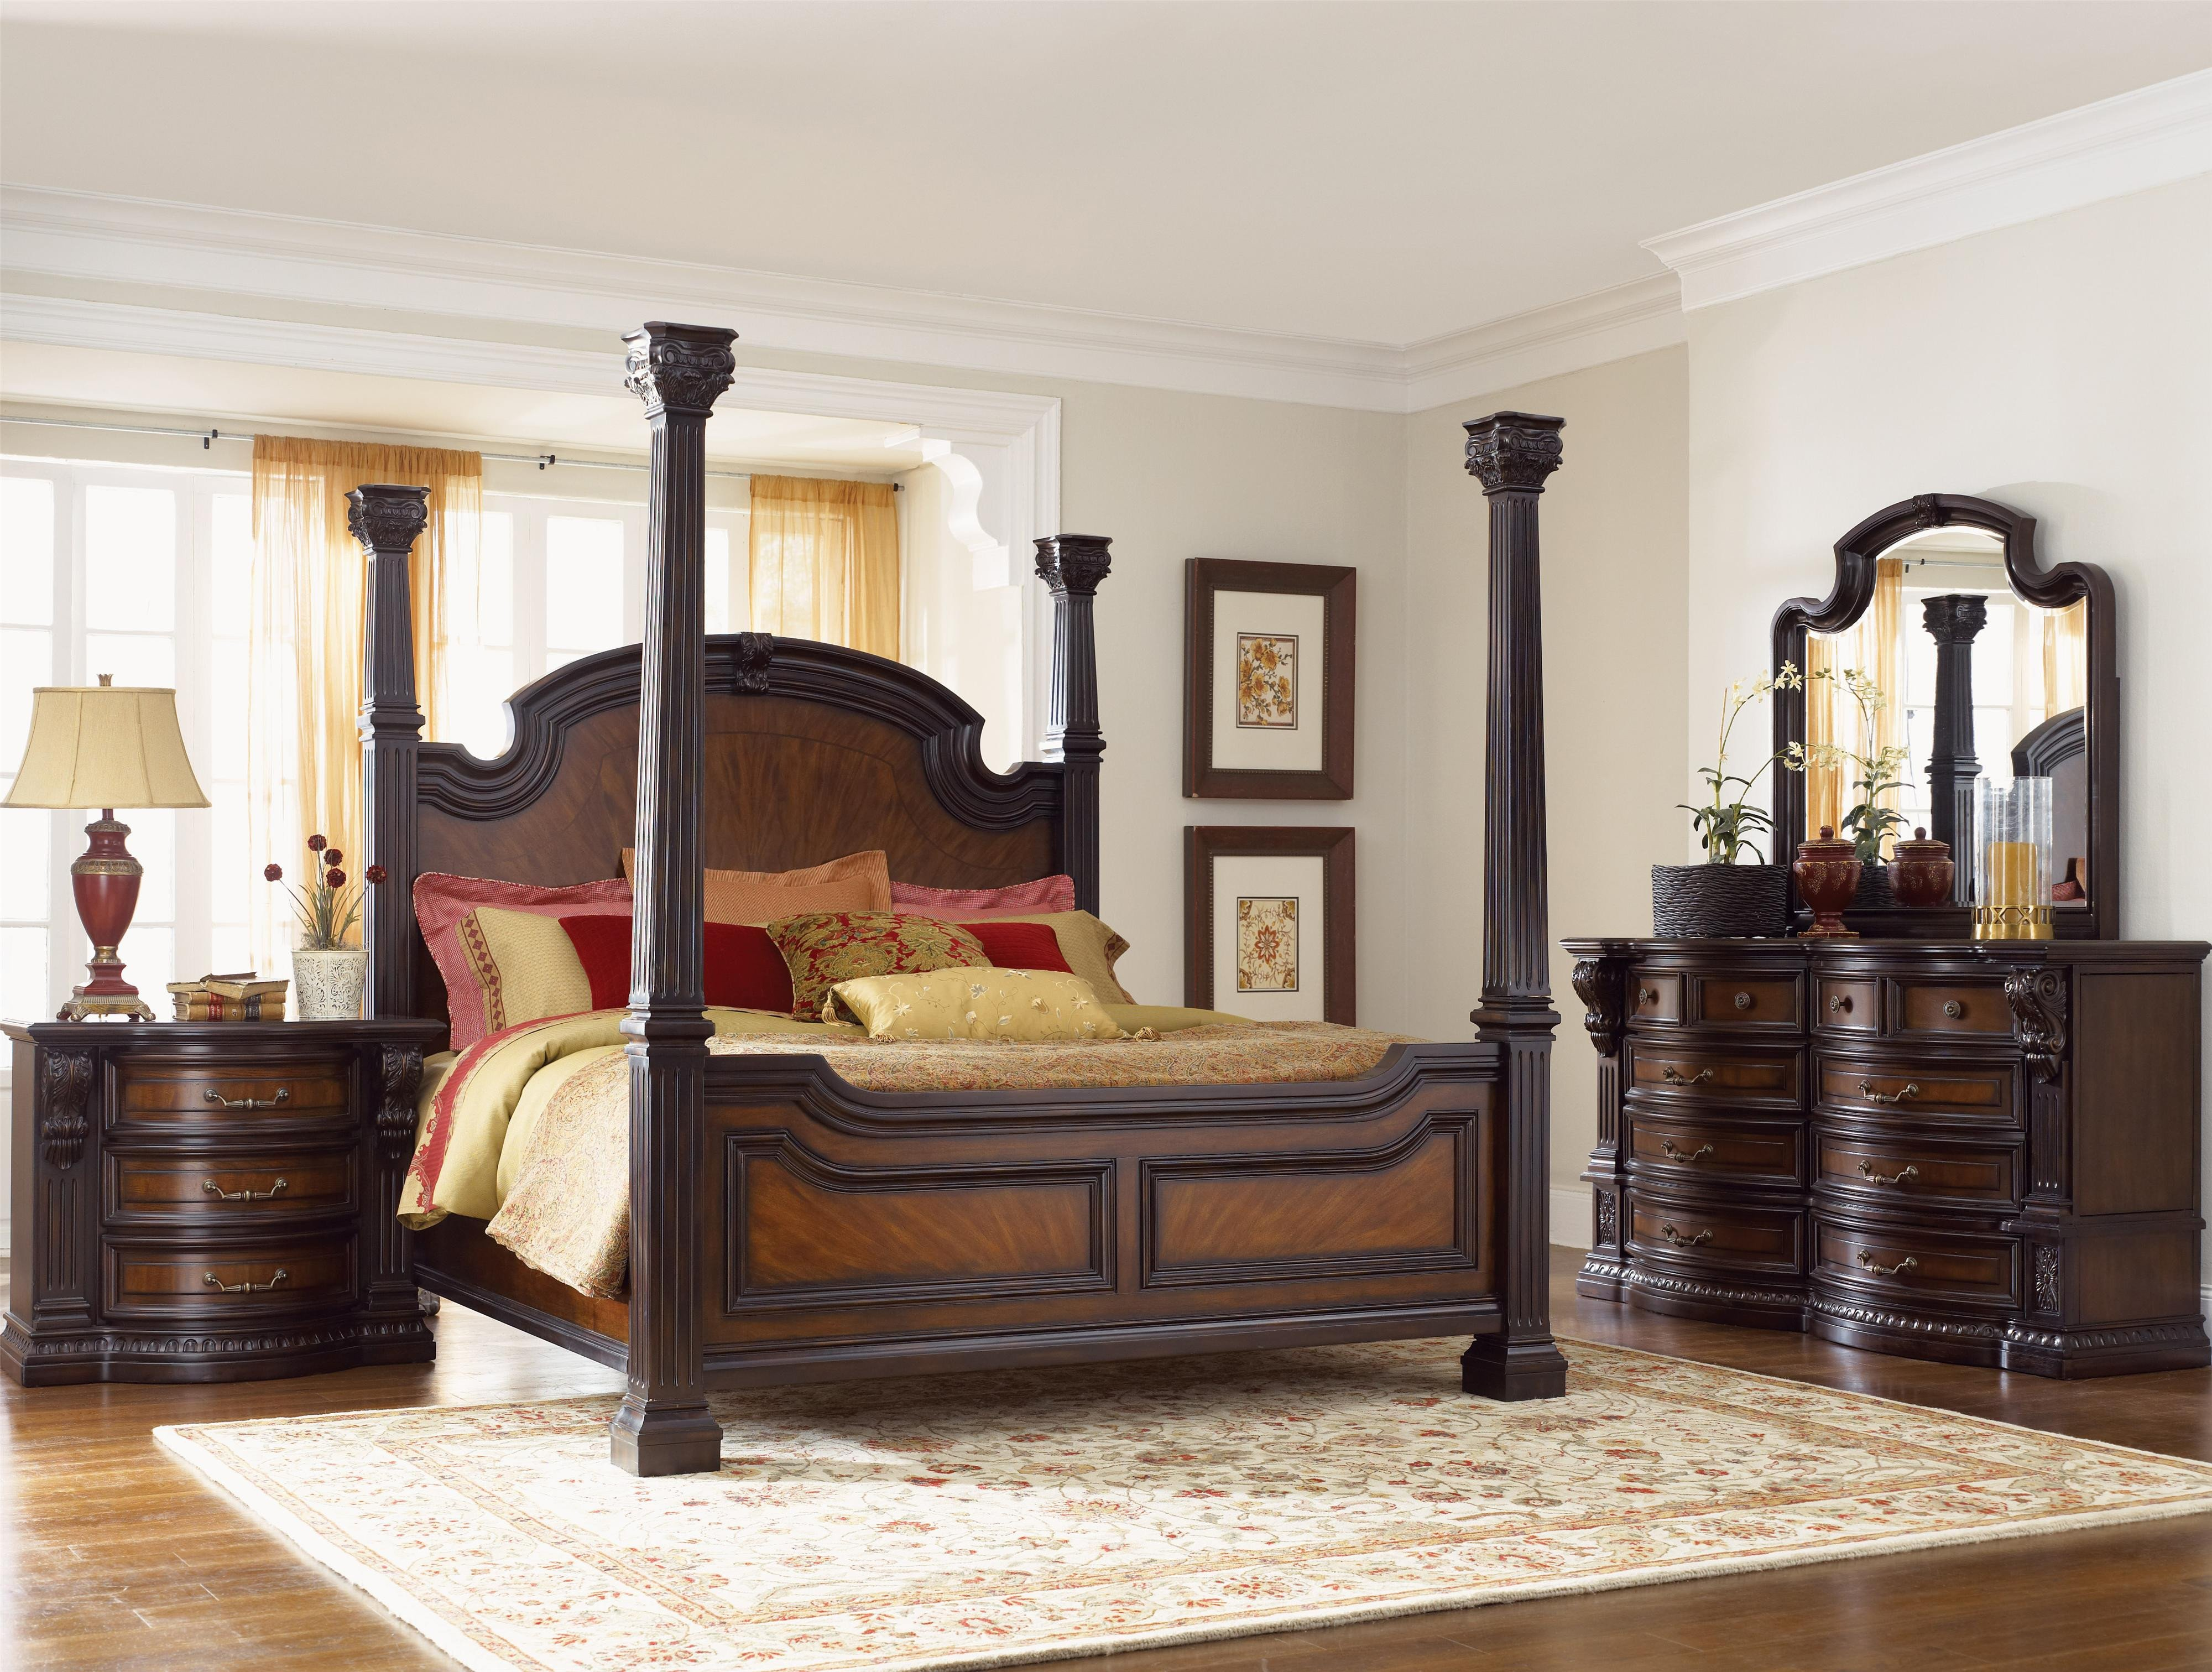 Cheap California King Bedroom Set New Grand Estates 02 by Fairmont Designs Royal Furniture